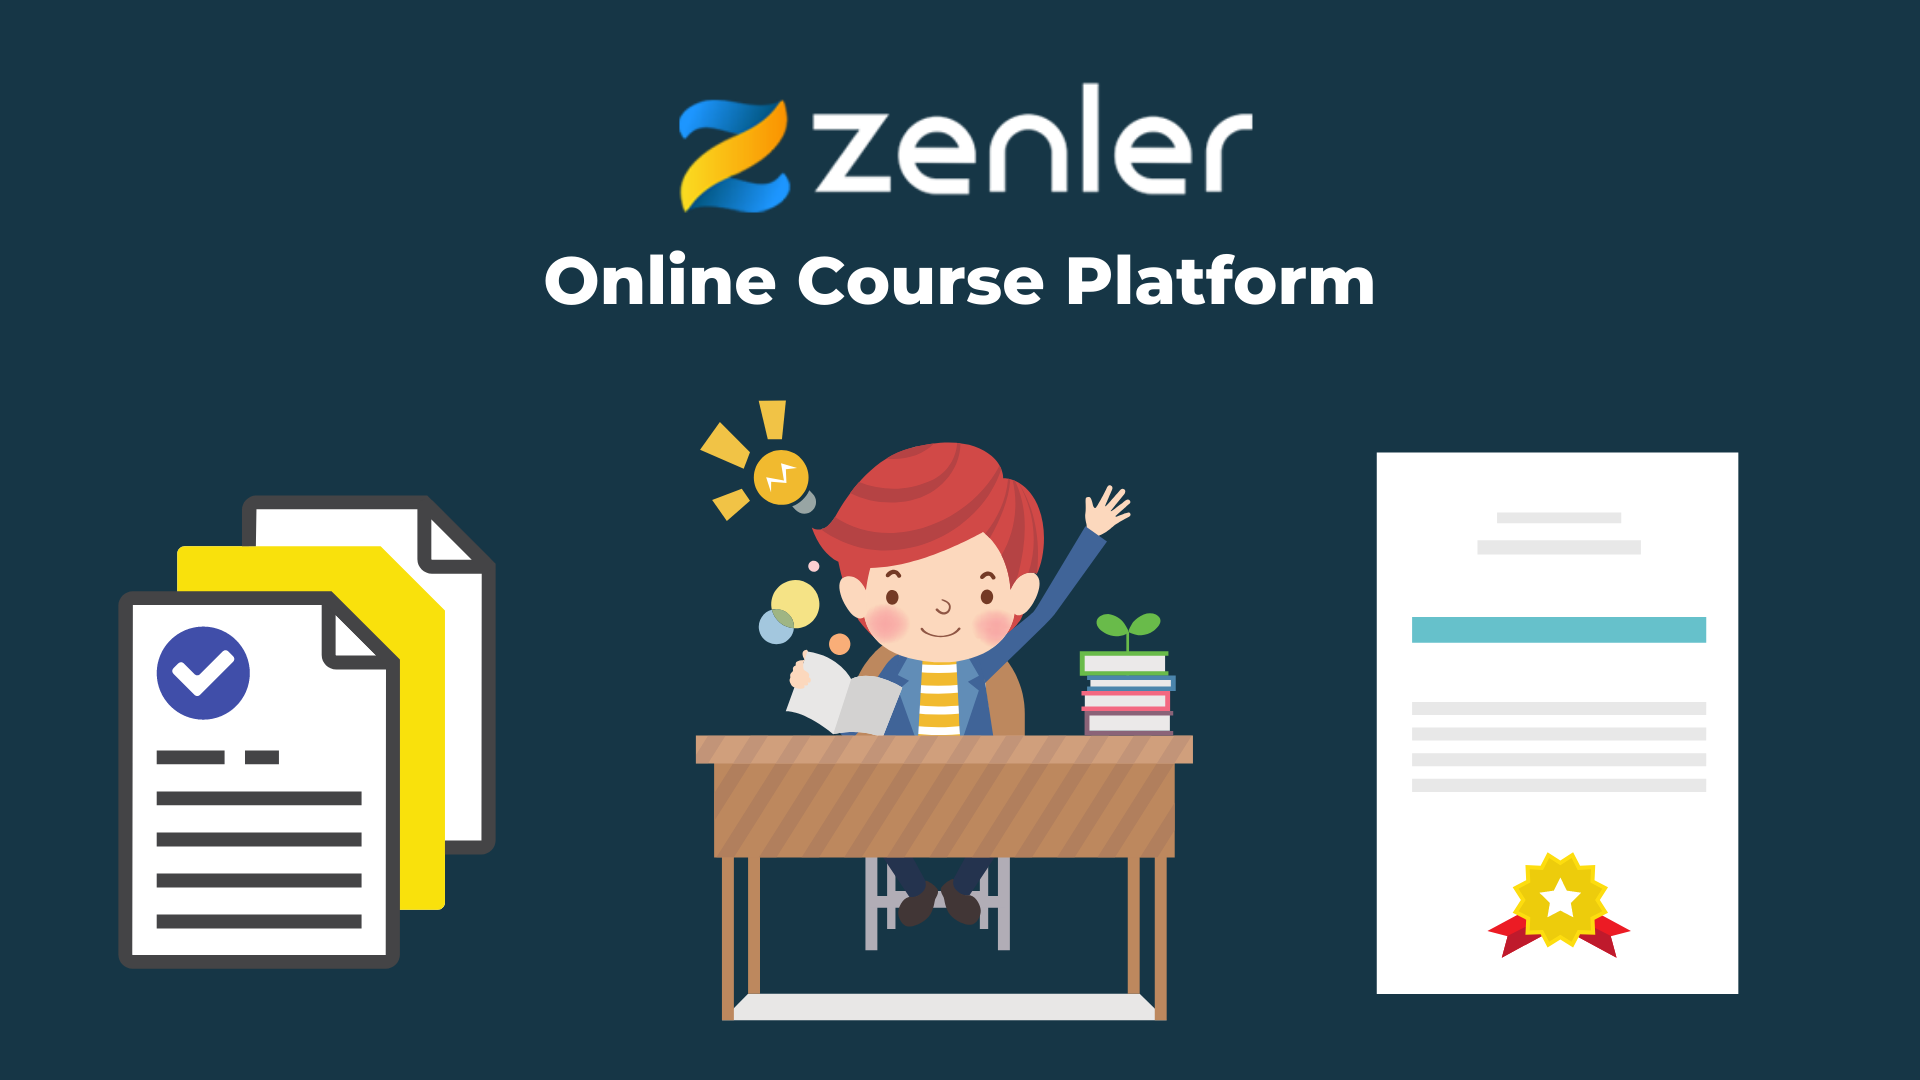 New Zenler and Online Course Platforms